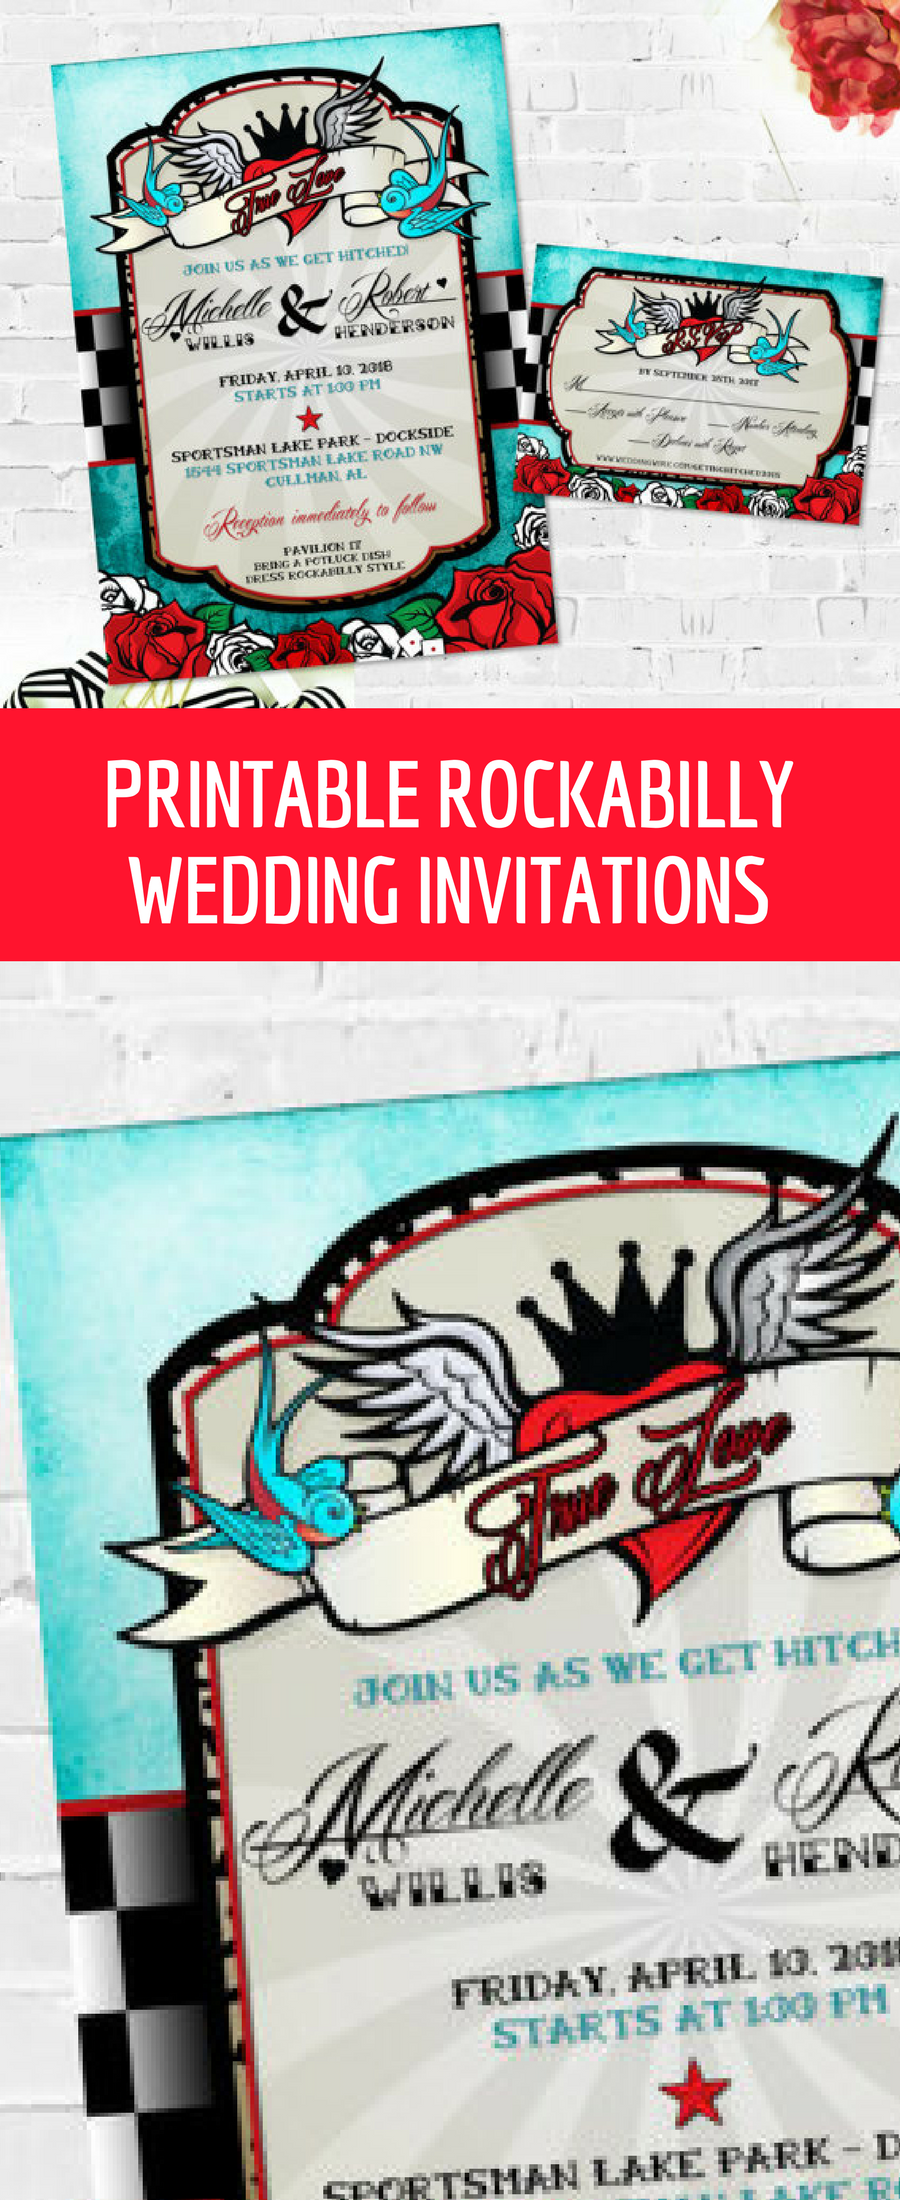 Printable rockabilly style wedding invitations, customized with your ...